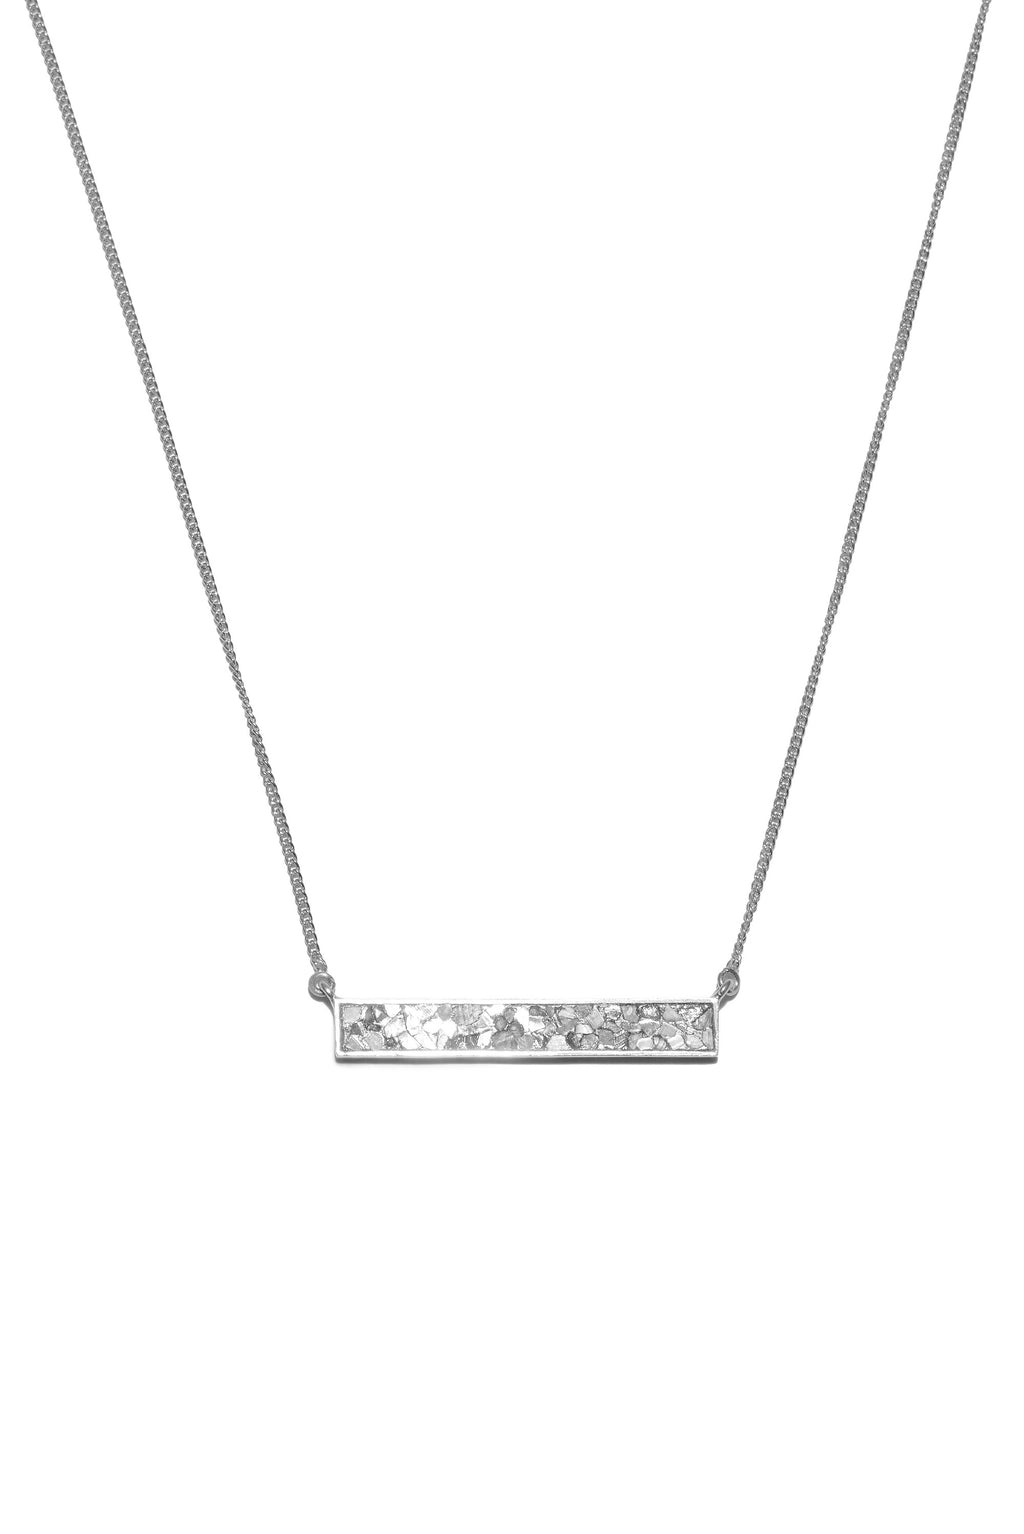 diamond rectangle sterling silver pendant necklace